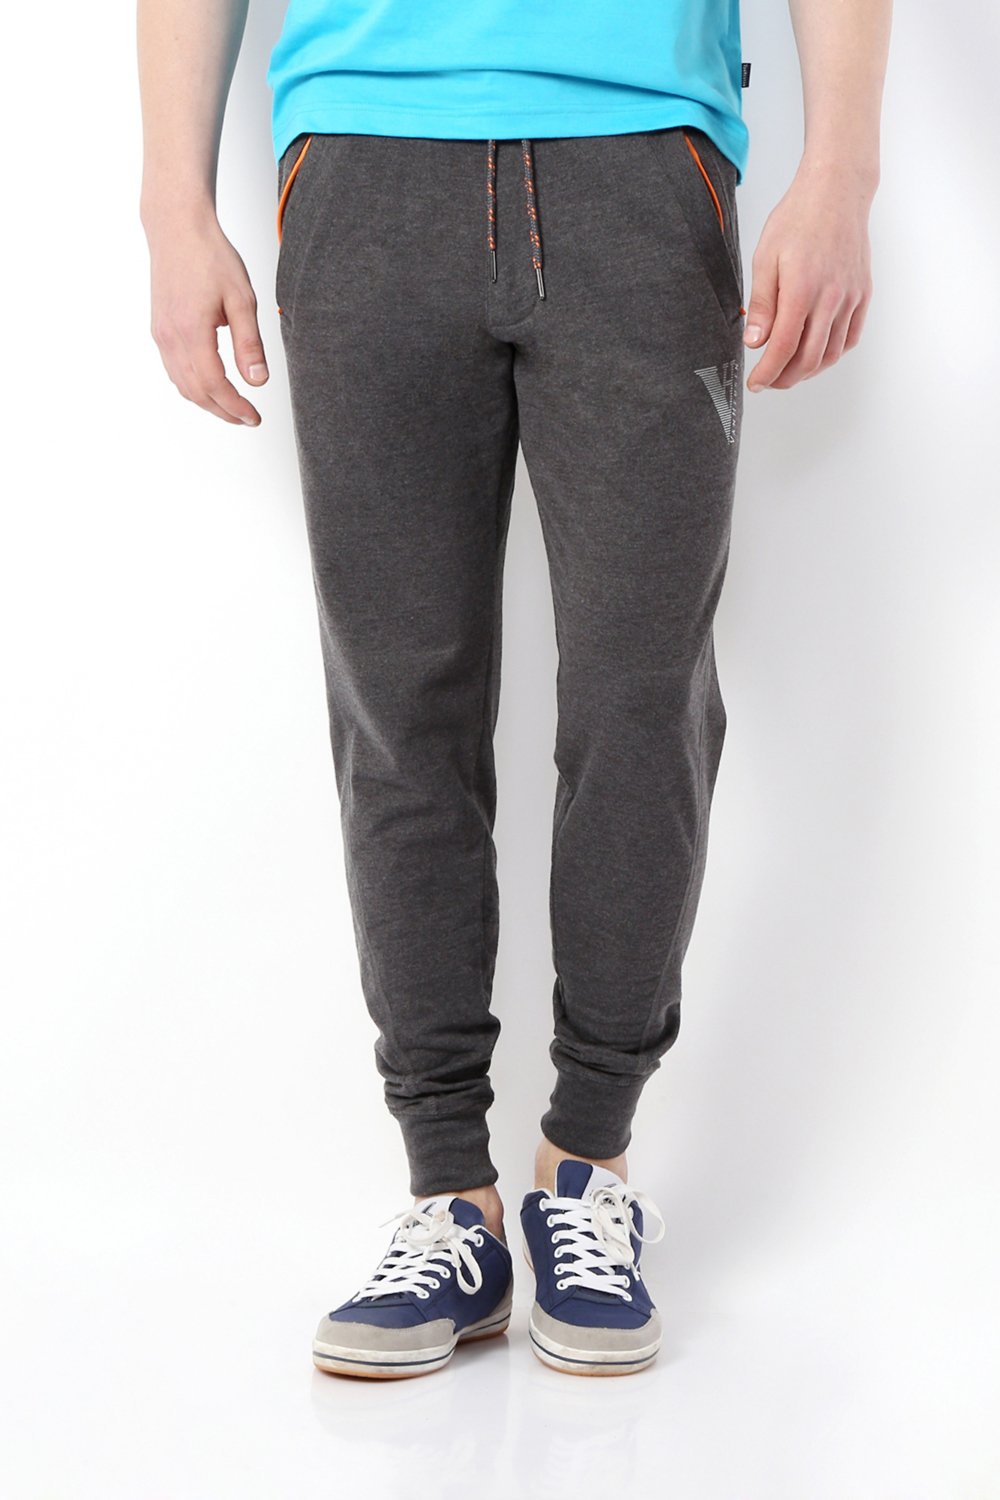 066351ee810c Van Heusen Track Pants and Joggers, Van Heusen Charcoal Jogger Pants for  Men at Vanheusenindia.com